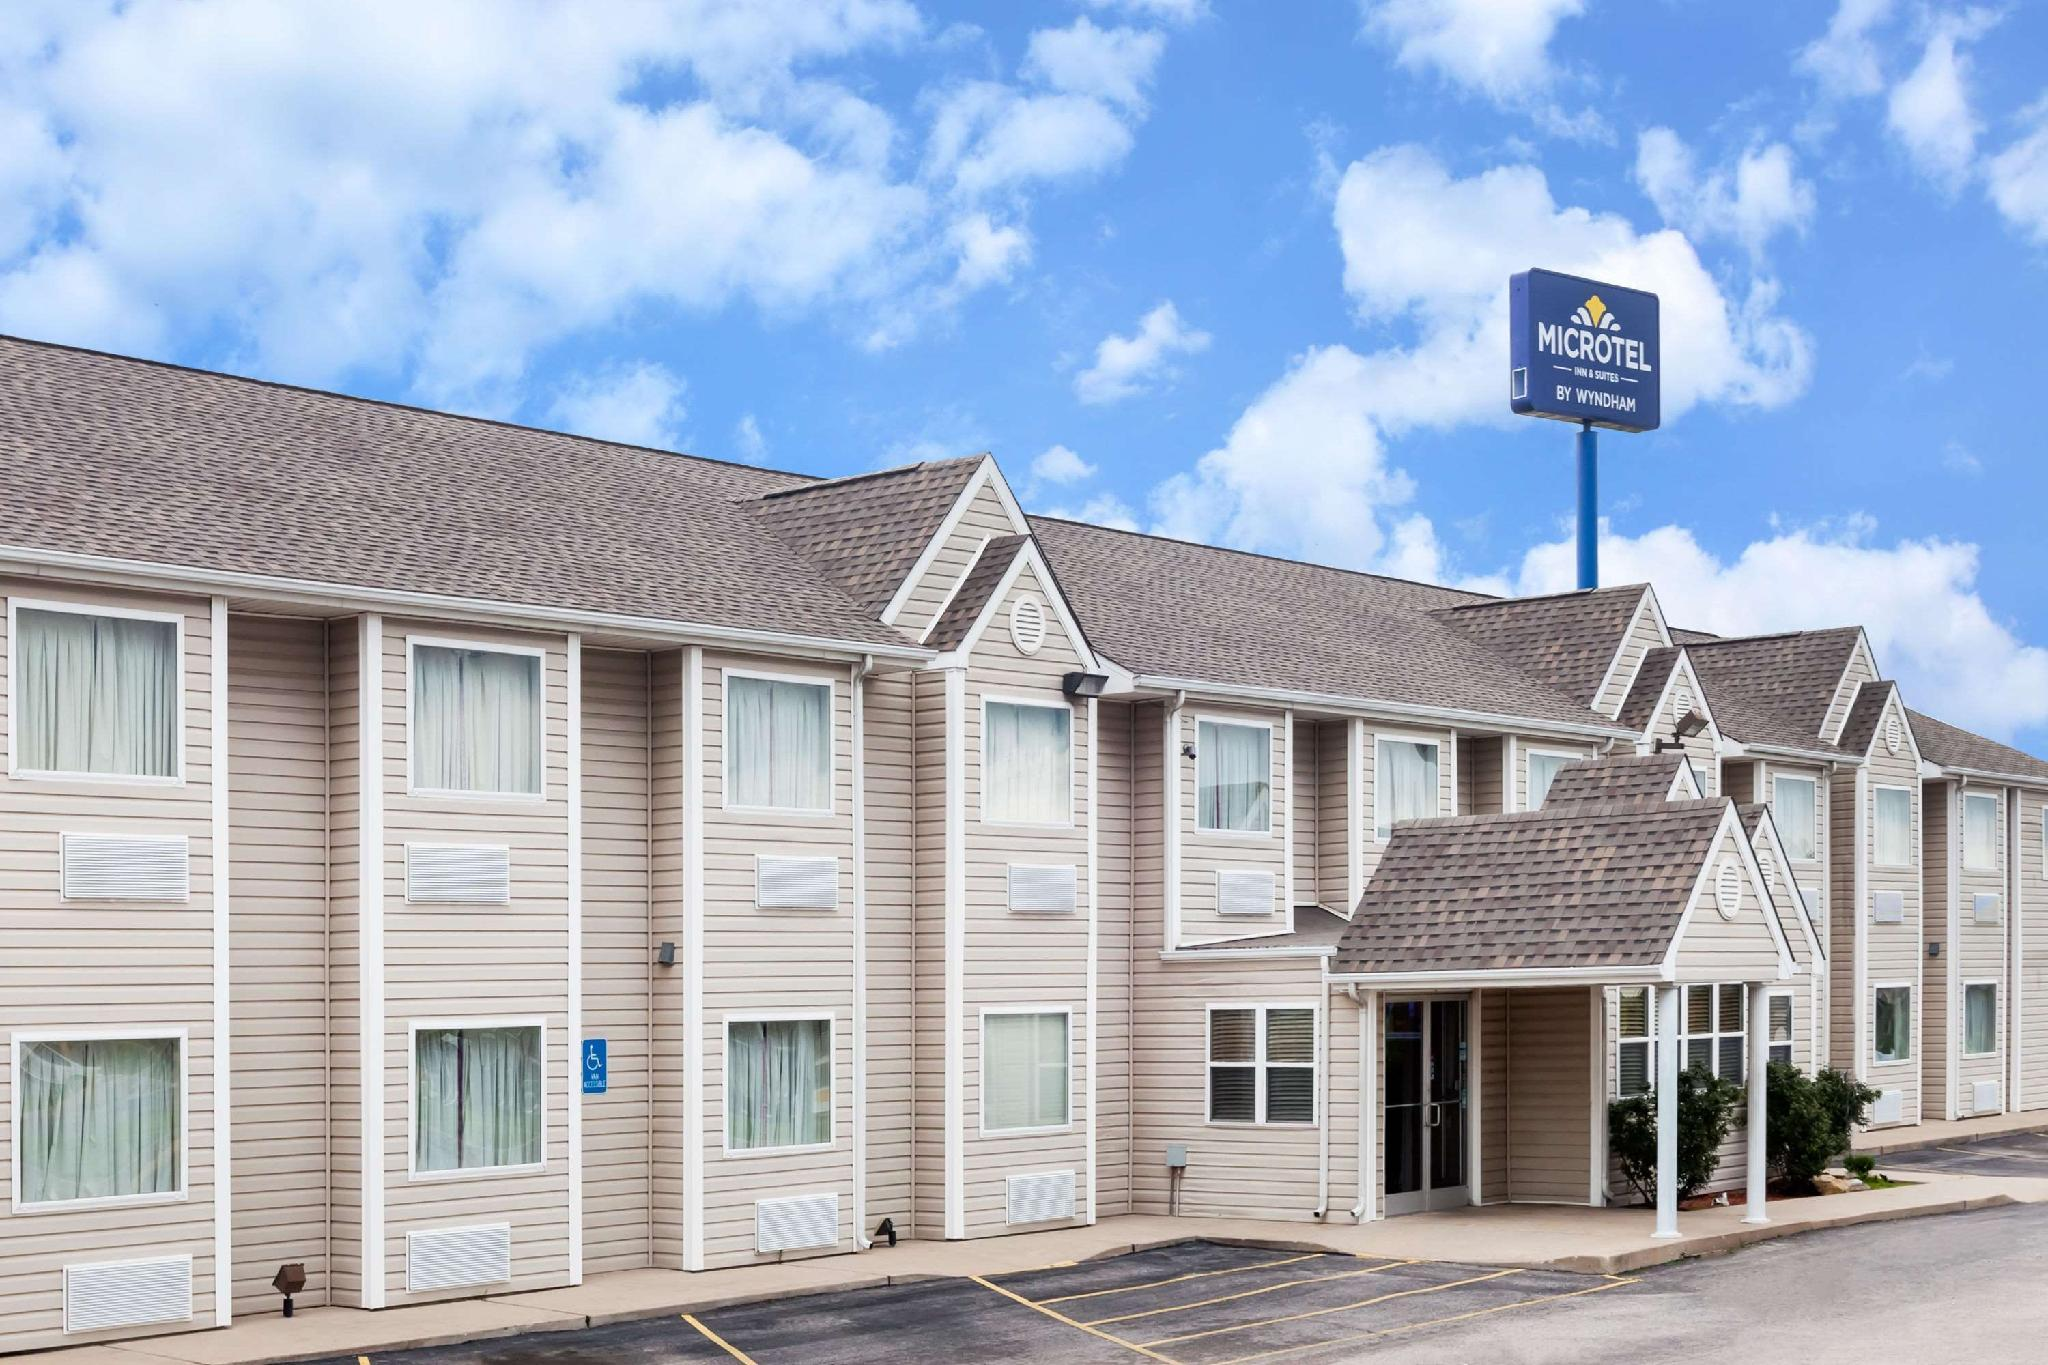 Microtel Inn And Suites By Wyndham Ardmore